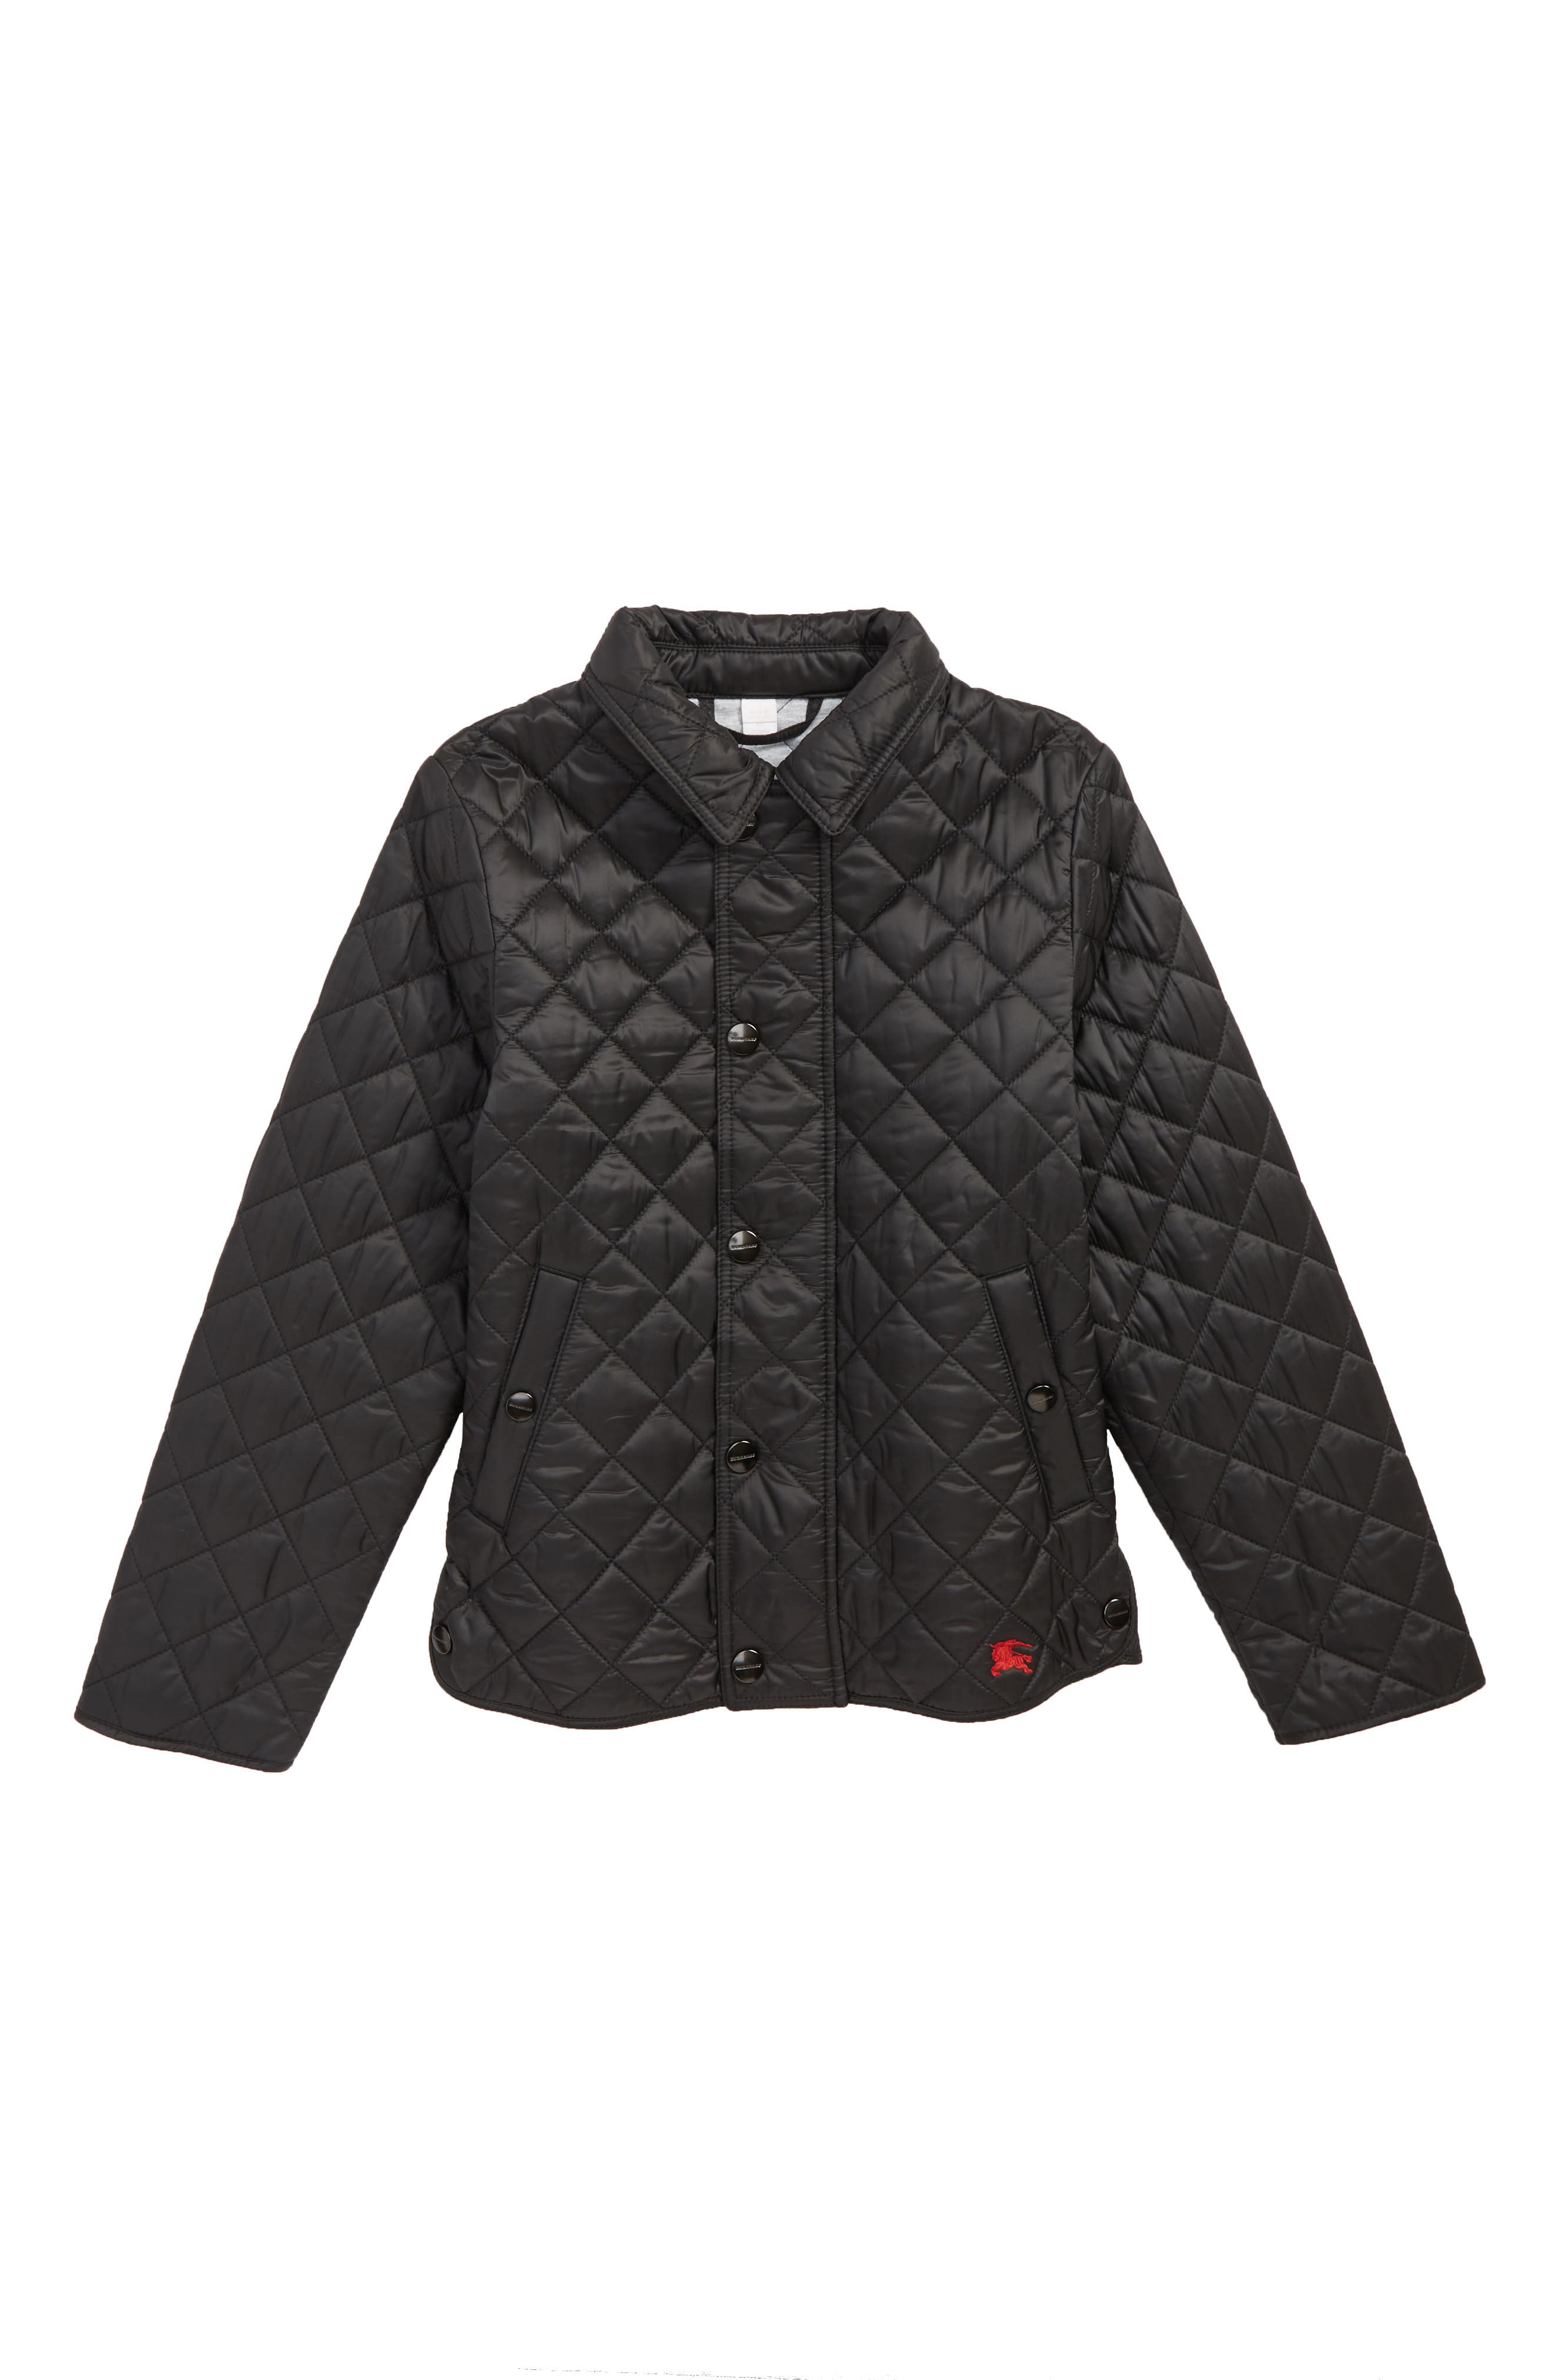 BURBERRY Lyle Diamond Quilted Jacket, Main, color, BLACK